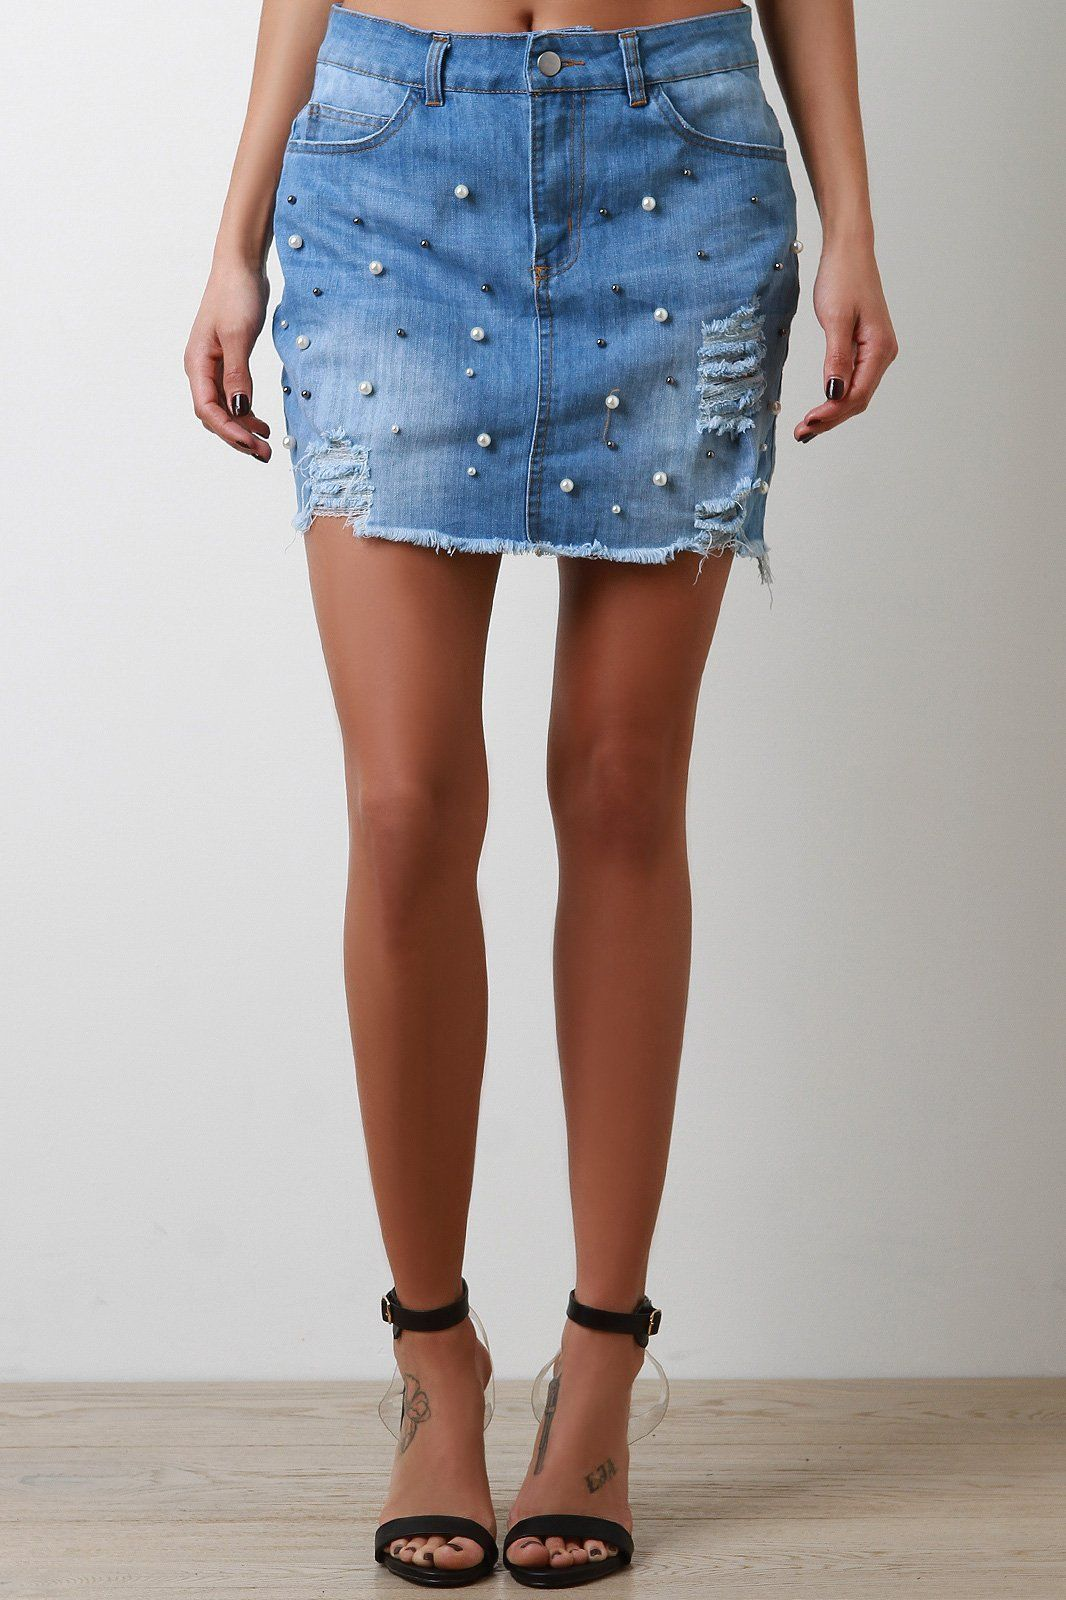 7d7081a51a This adorable high waisted denim skirt features faux pearl accents, raw cut  mini length hem